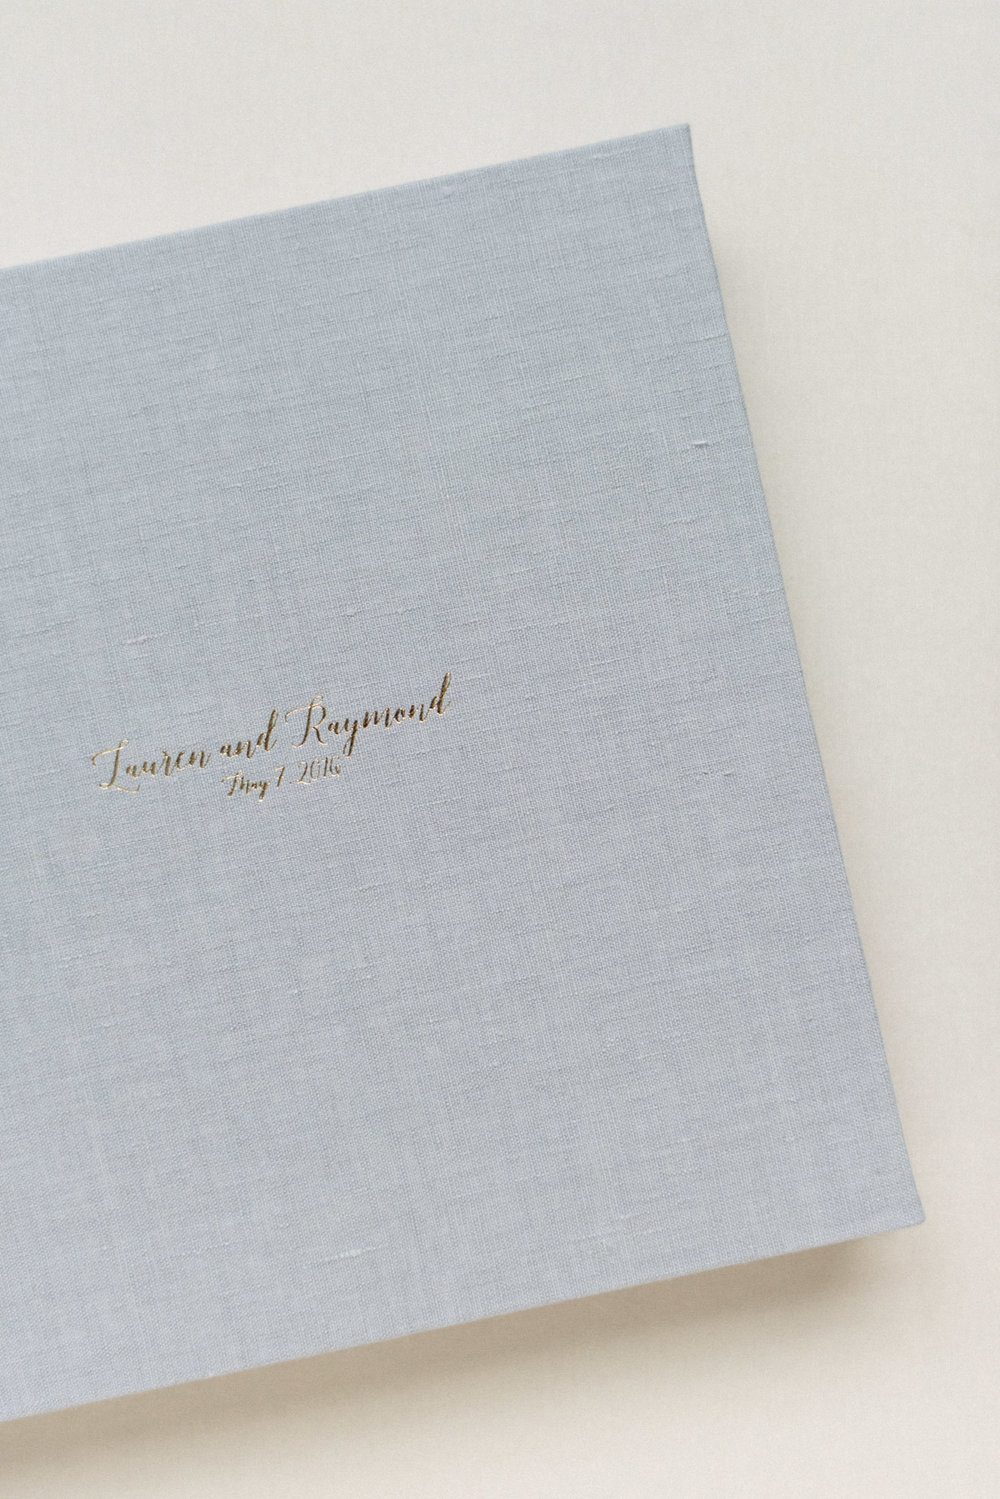 NJ Wedding Photographer Fine Art Luxe Linen Wedding Album with Gold Foil